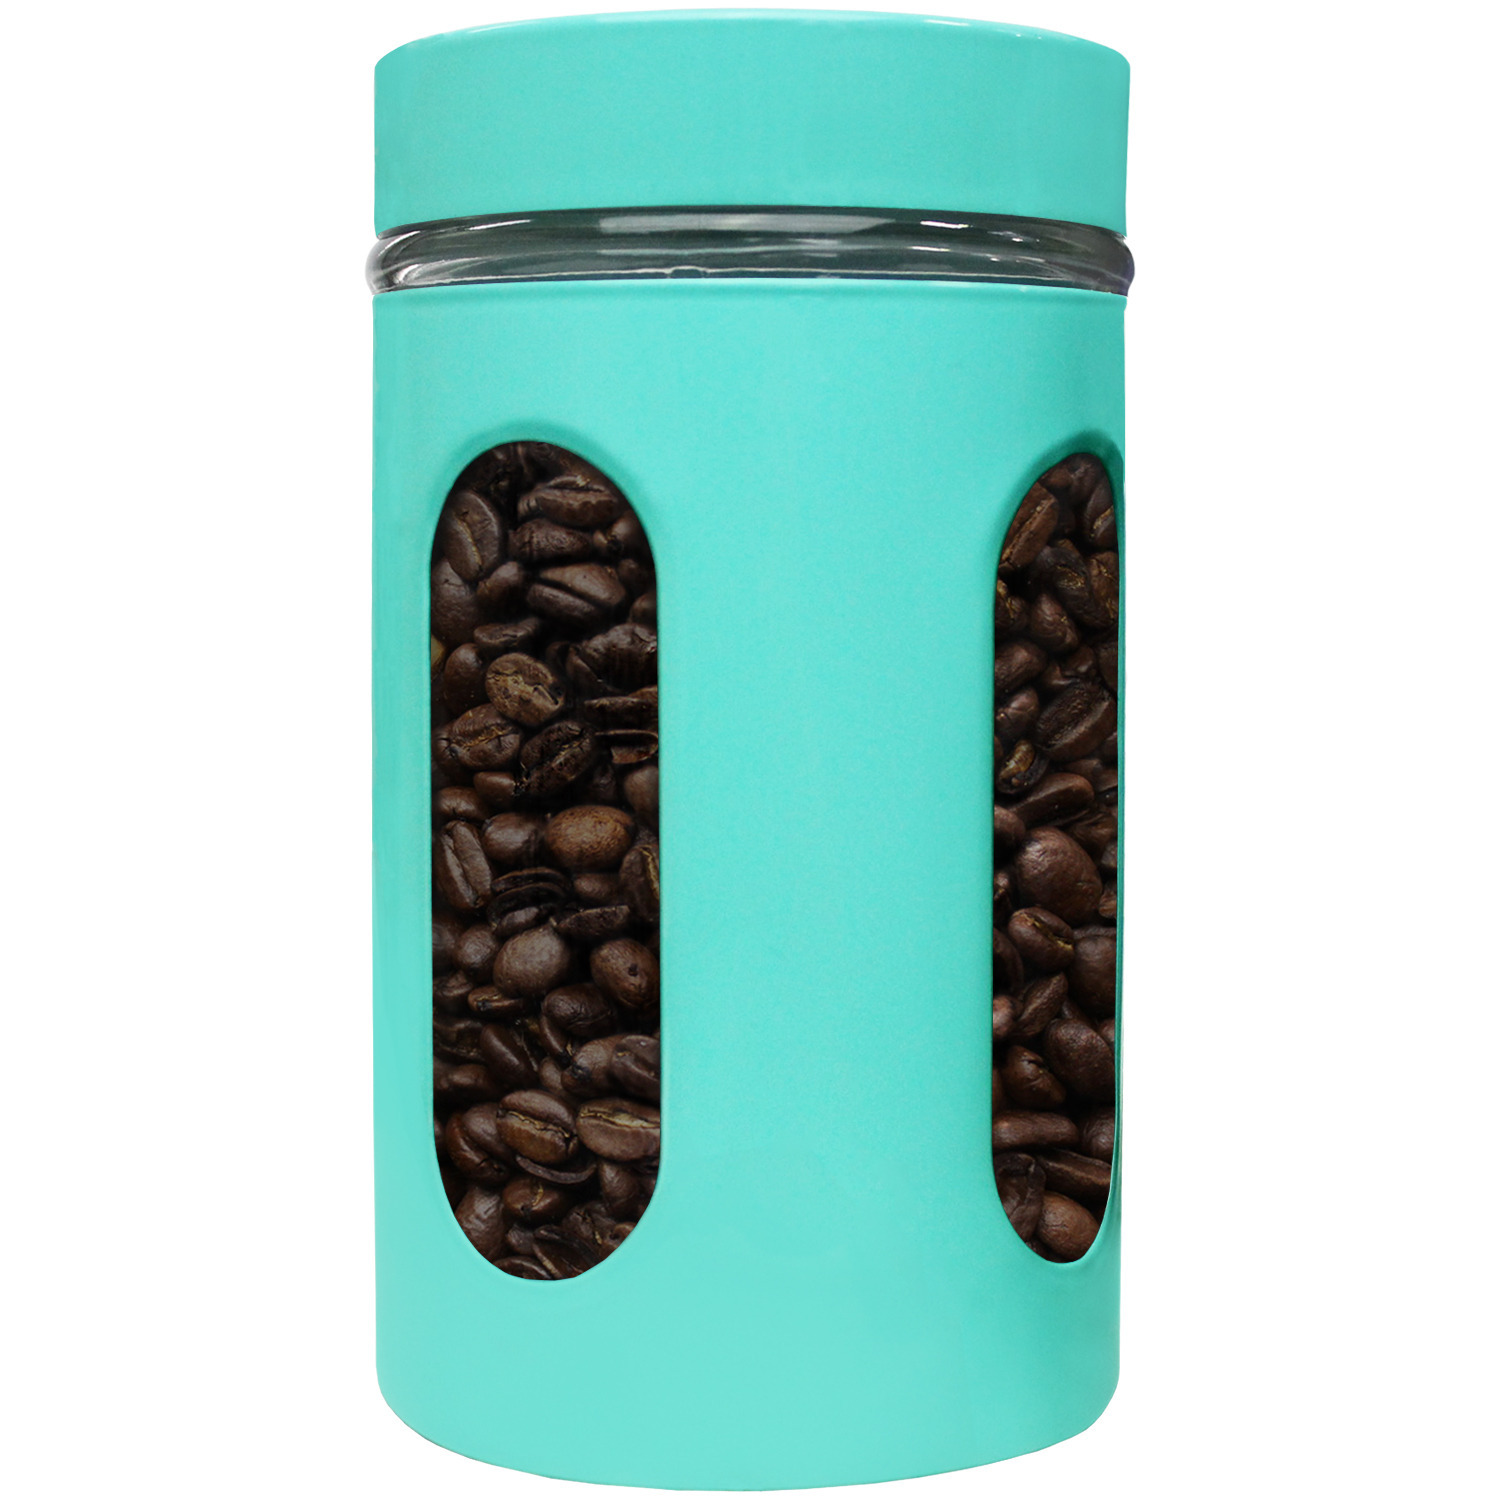 Blue Donuts 32oz Stainless Steel Canister with Window - Turquoise